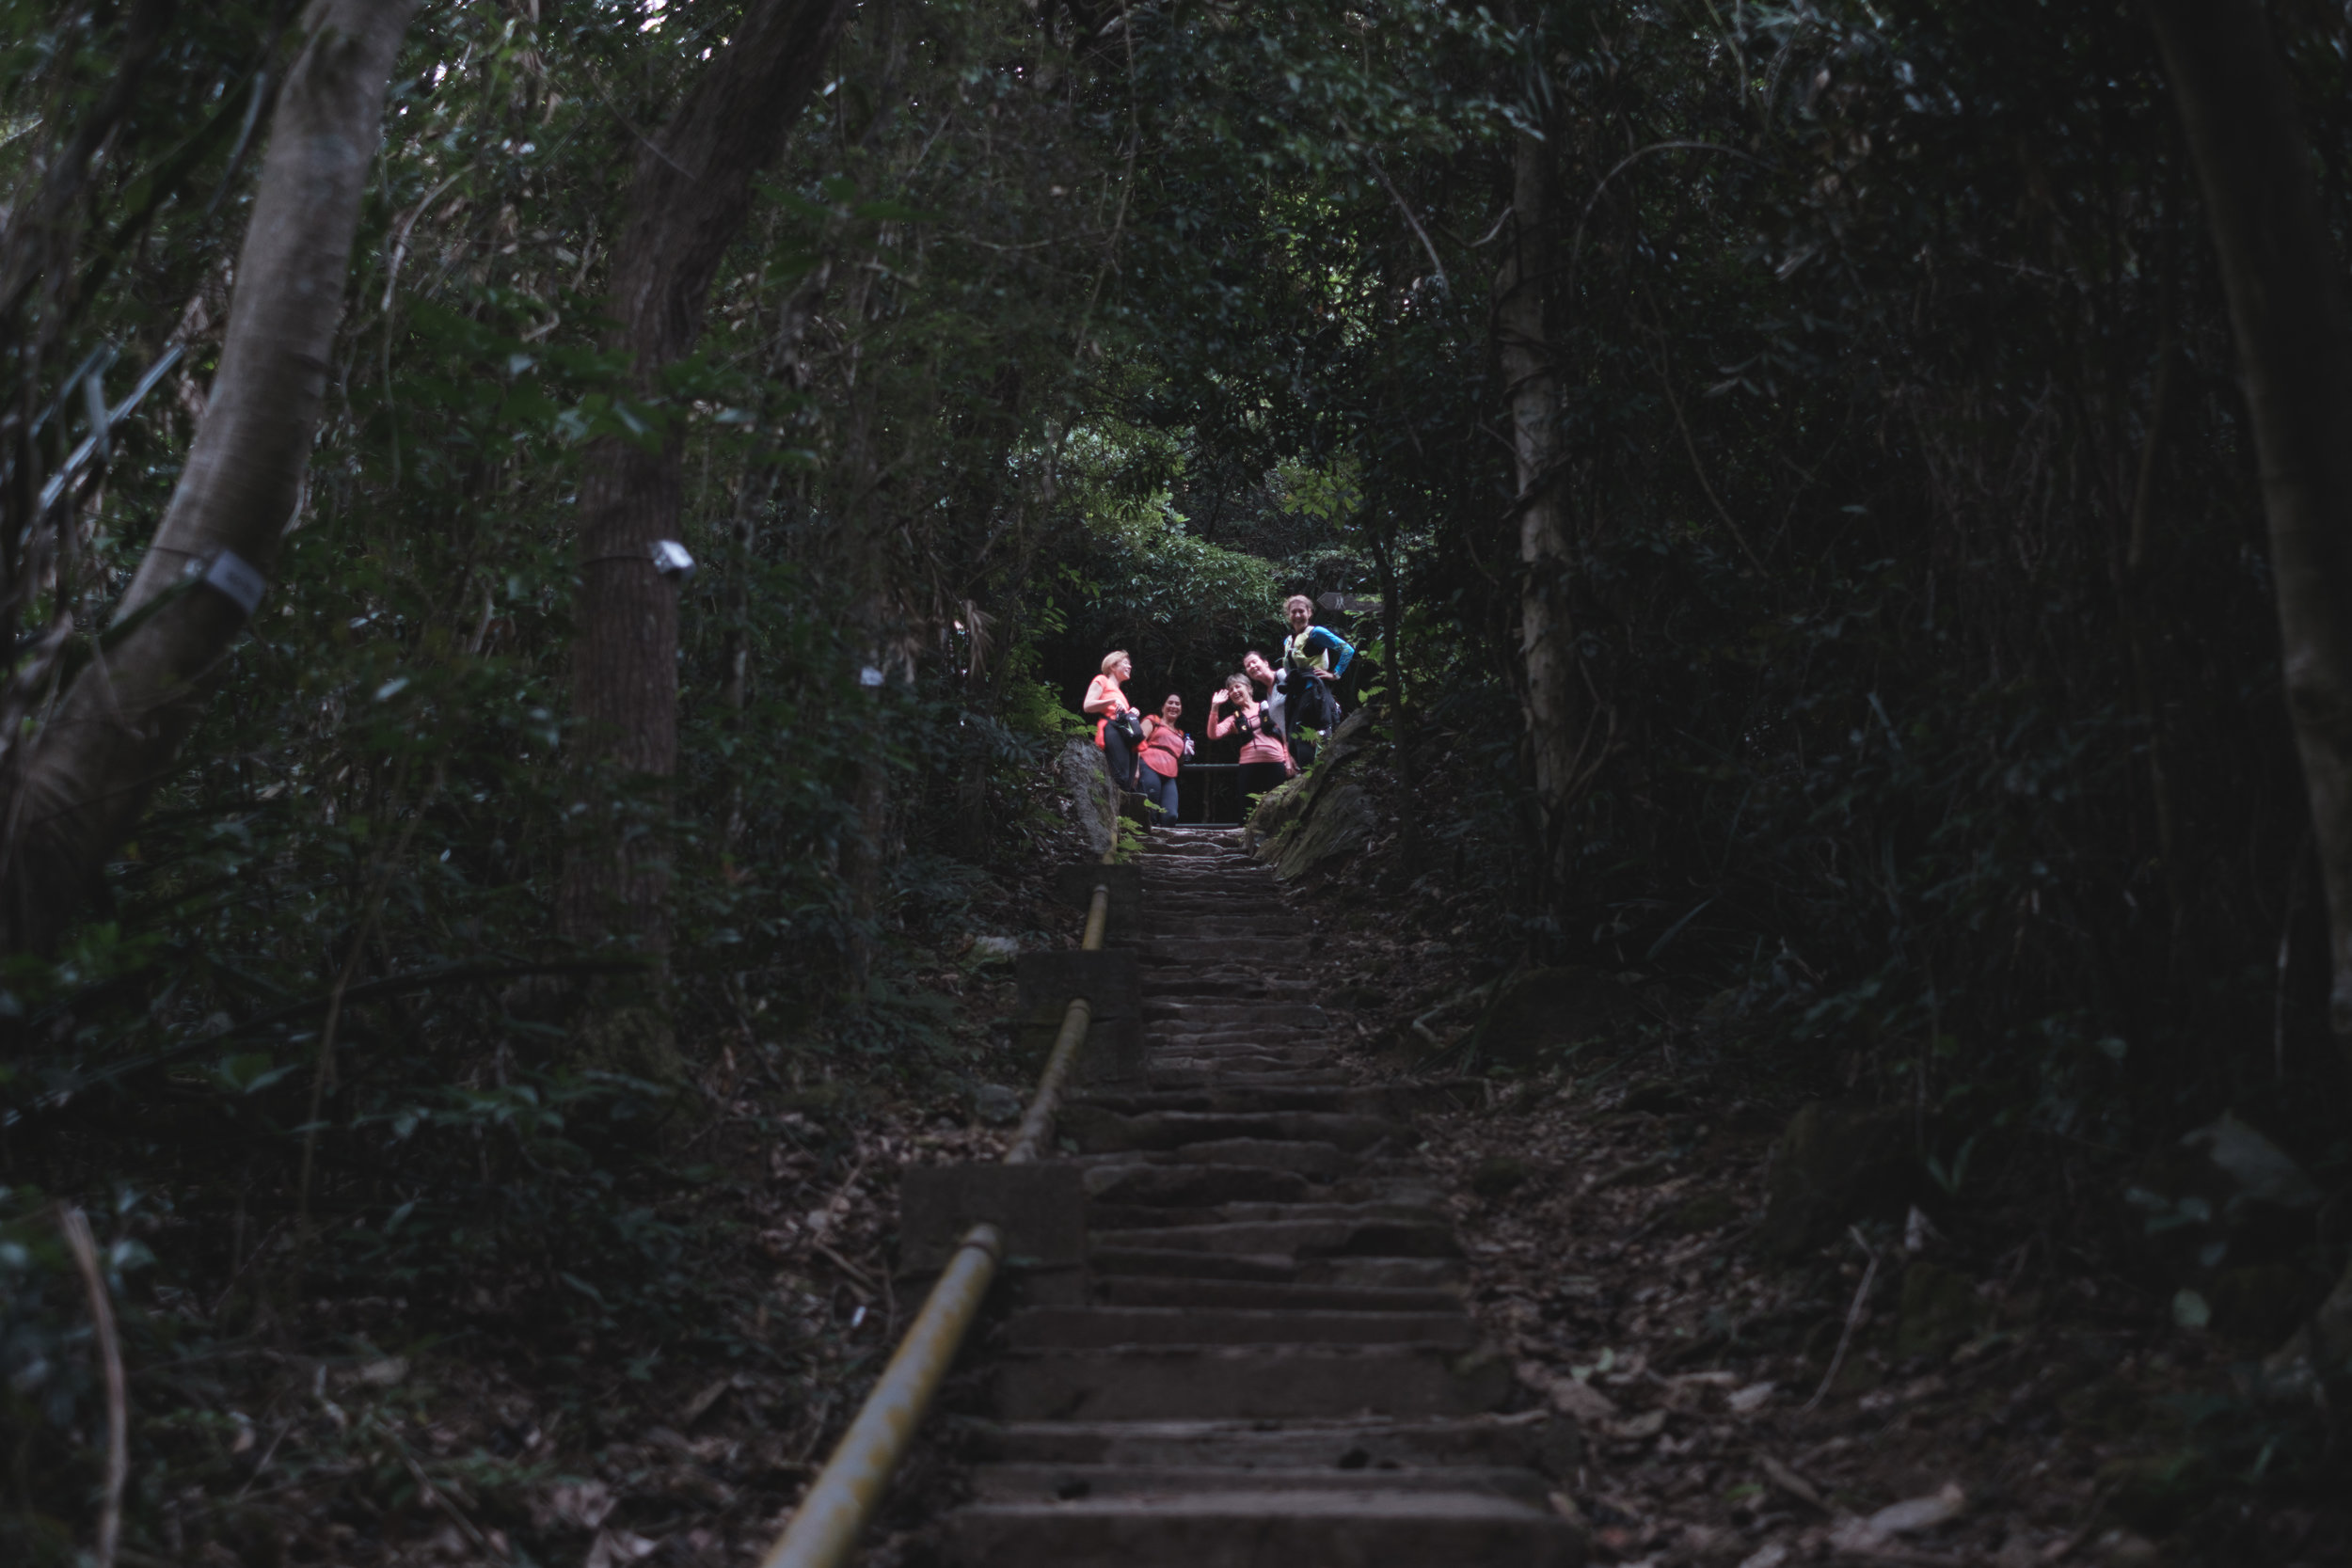 A womens group of hikers captured a the top of a set of stairs at the Dragon's Back Trail in Hong Kong